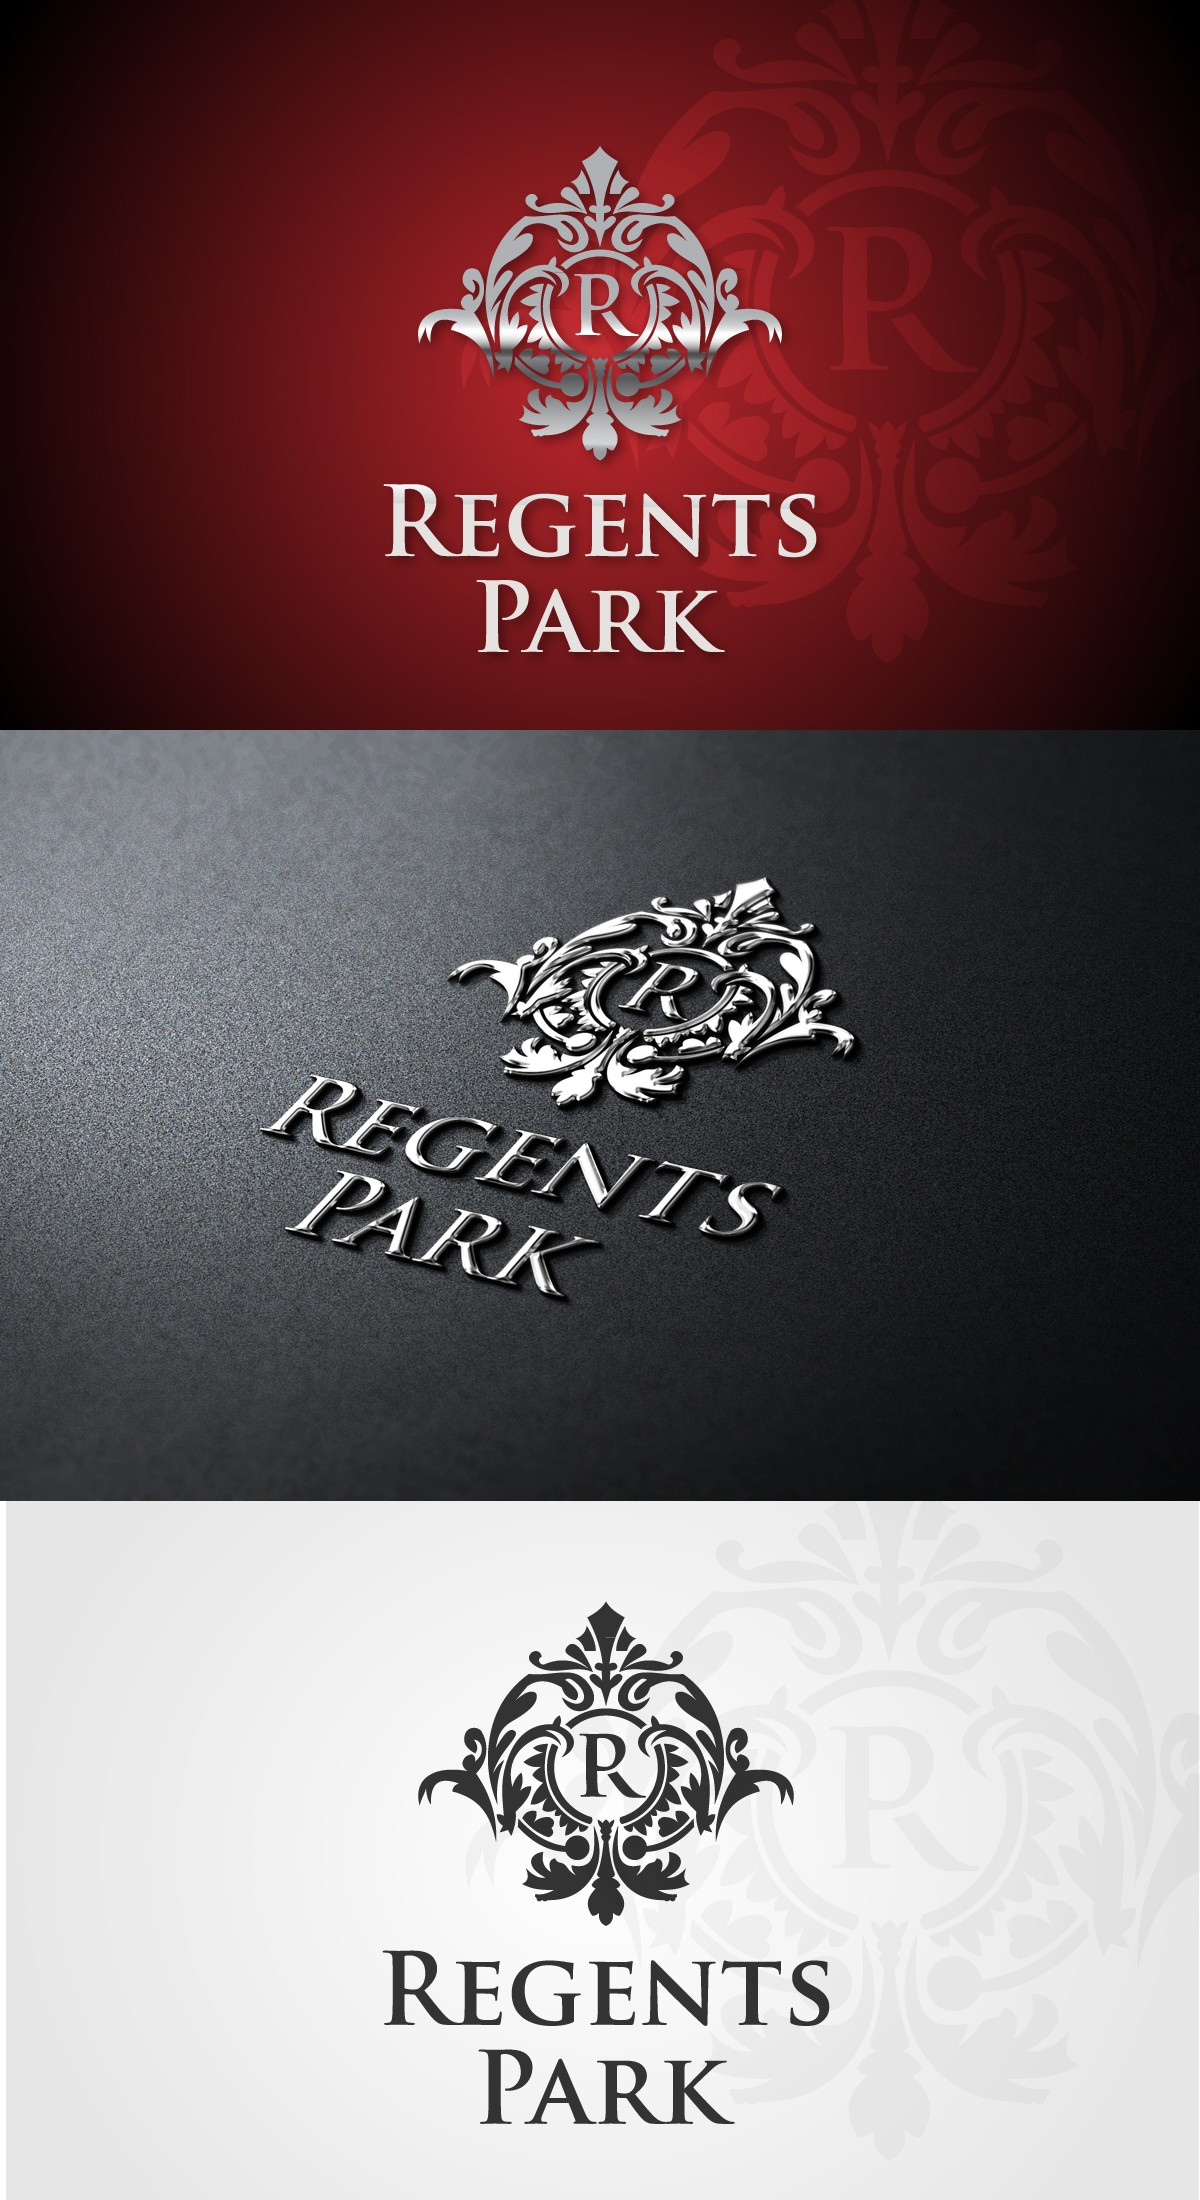 Regents Park needs a new logo and business card